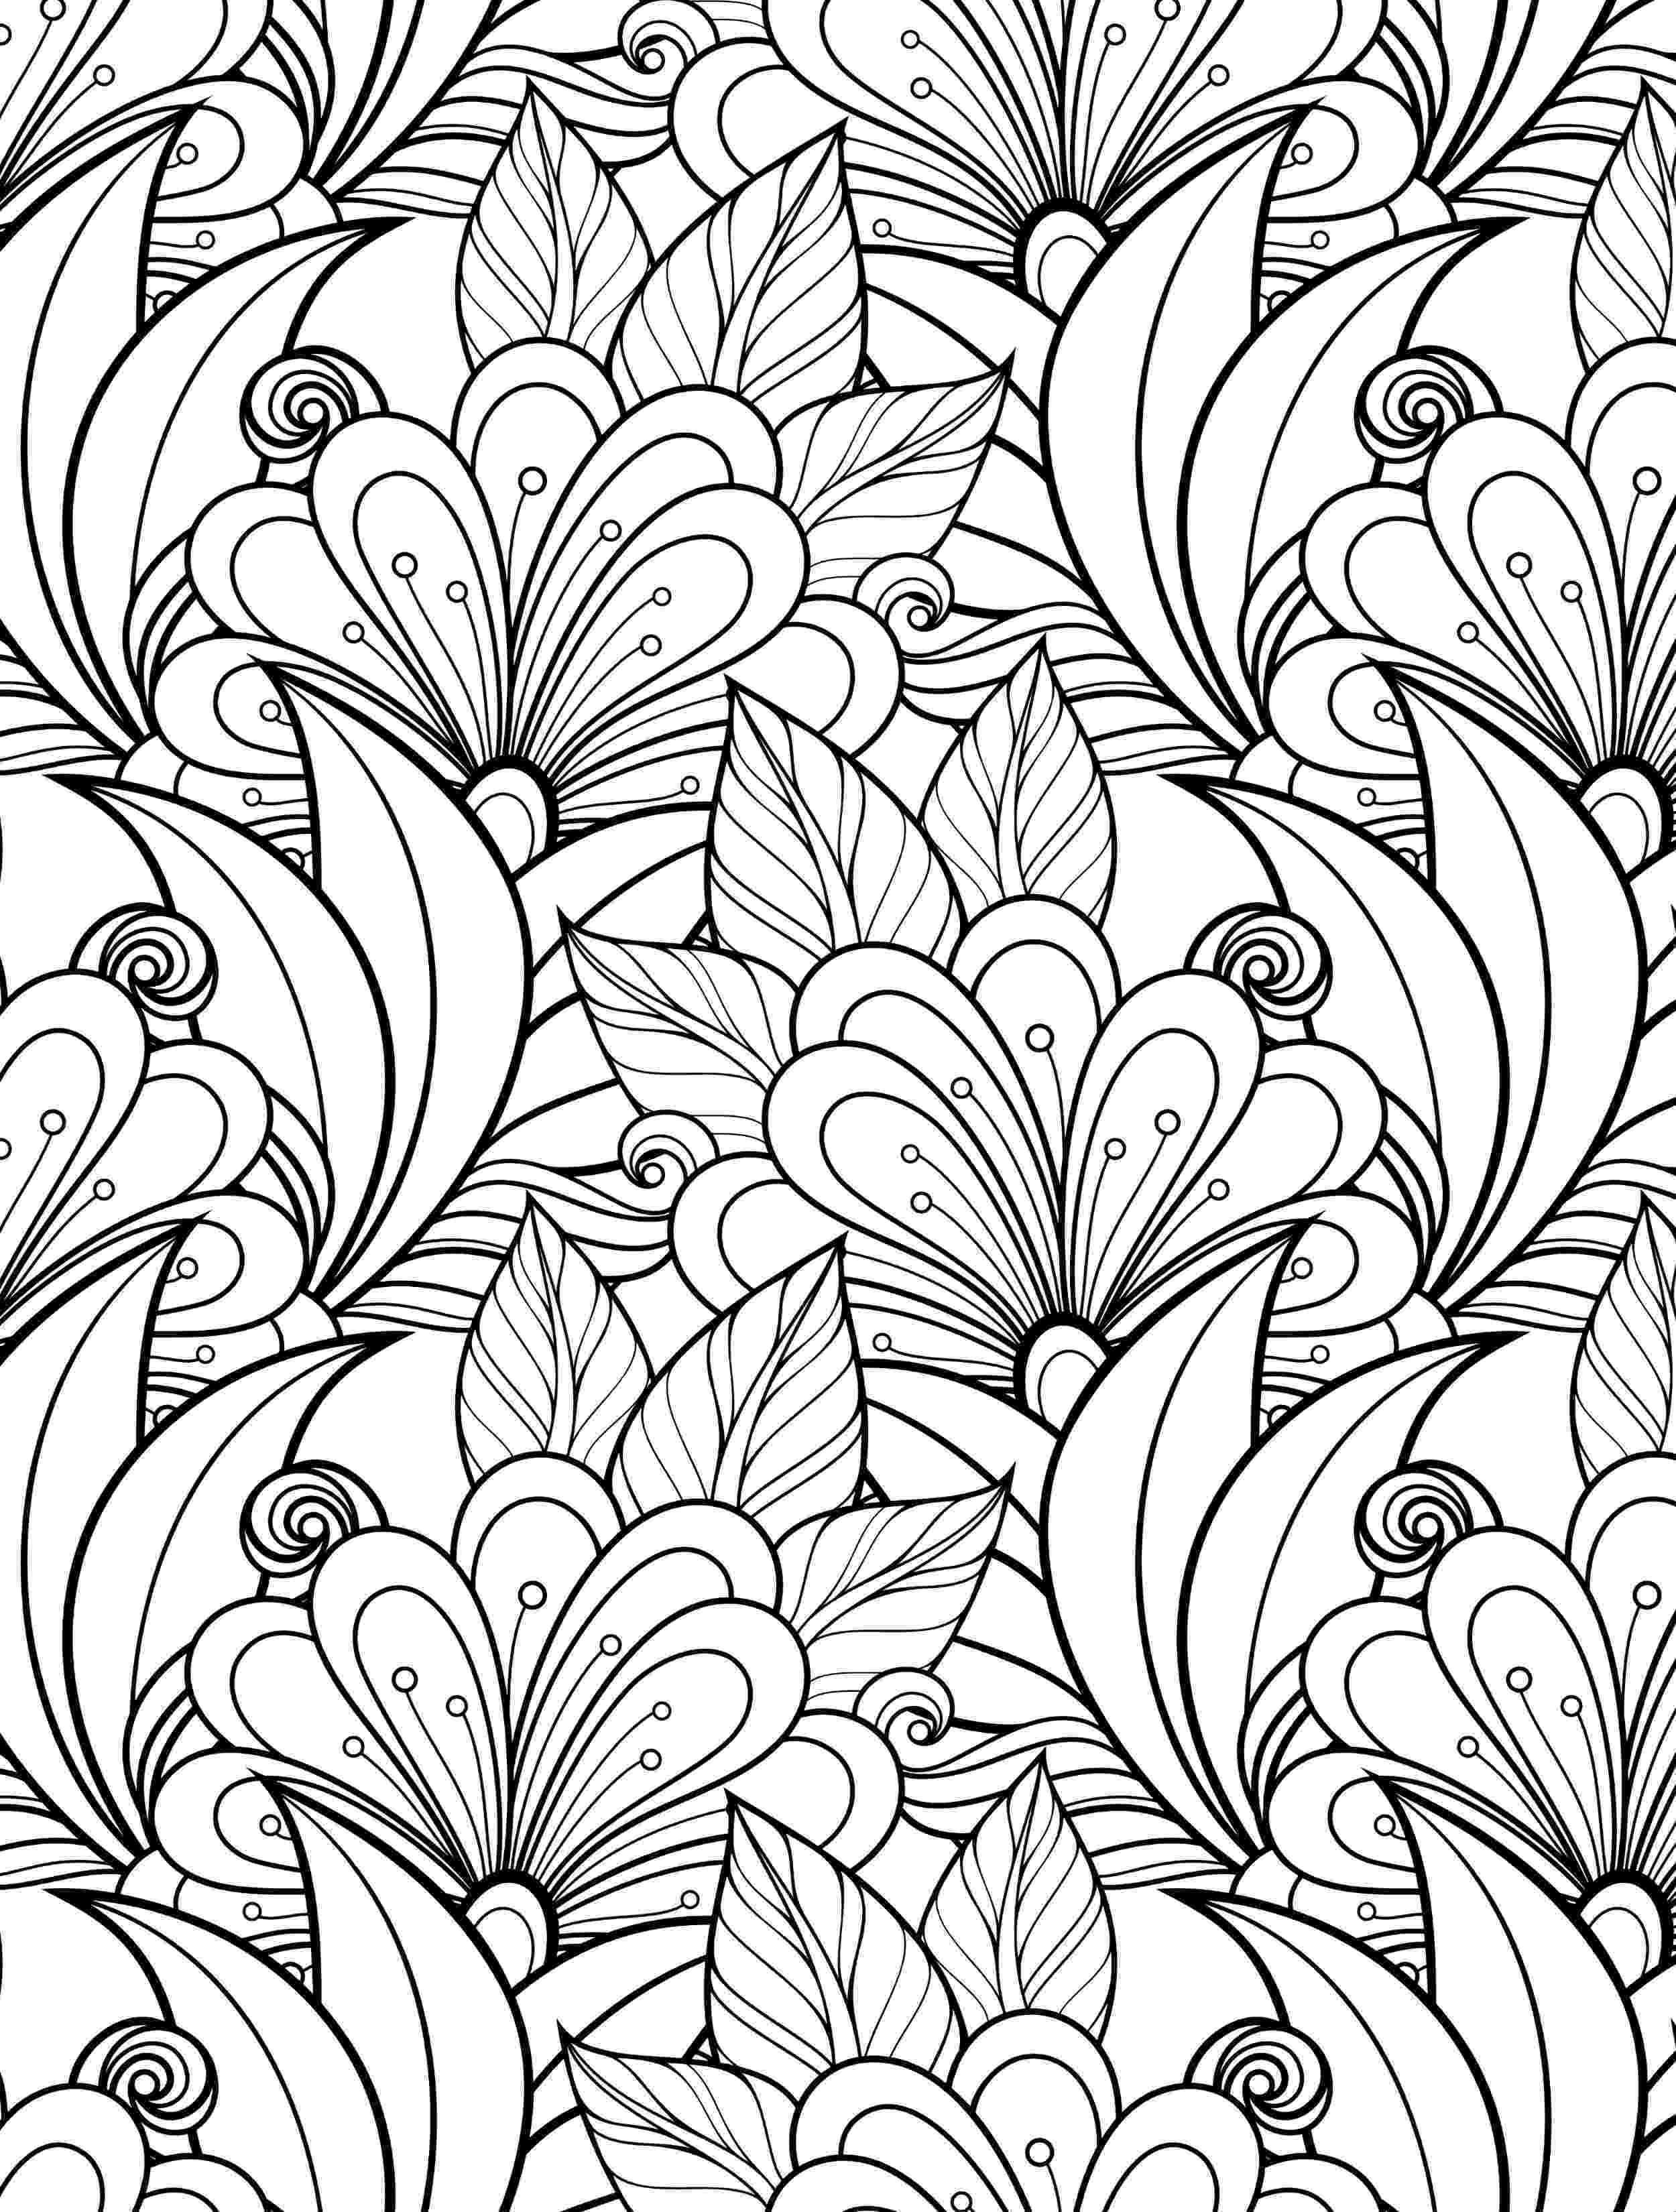 coloring book for adults where to coloring book samples selah works adult coloring books for adults coloring where to book